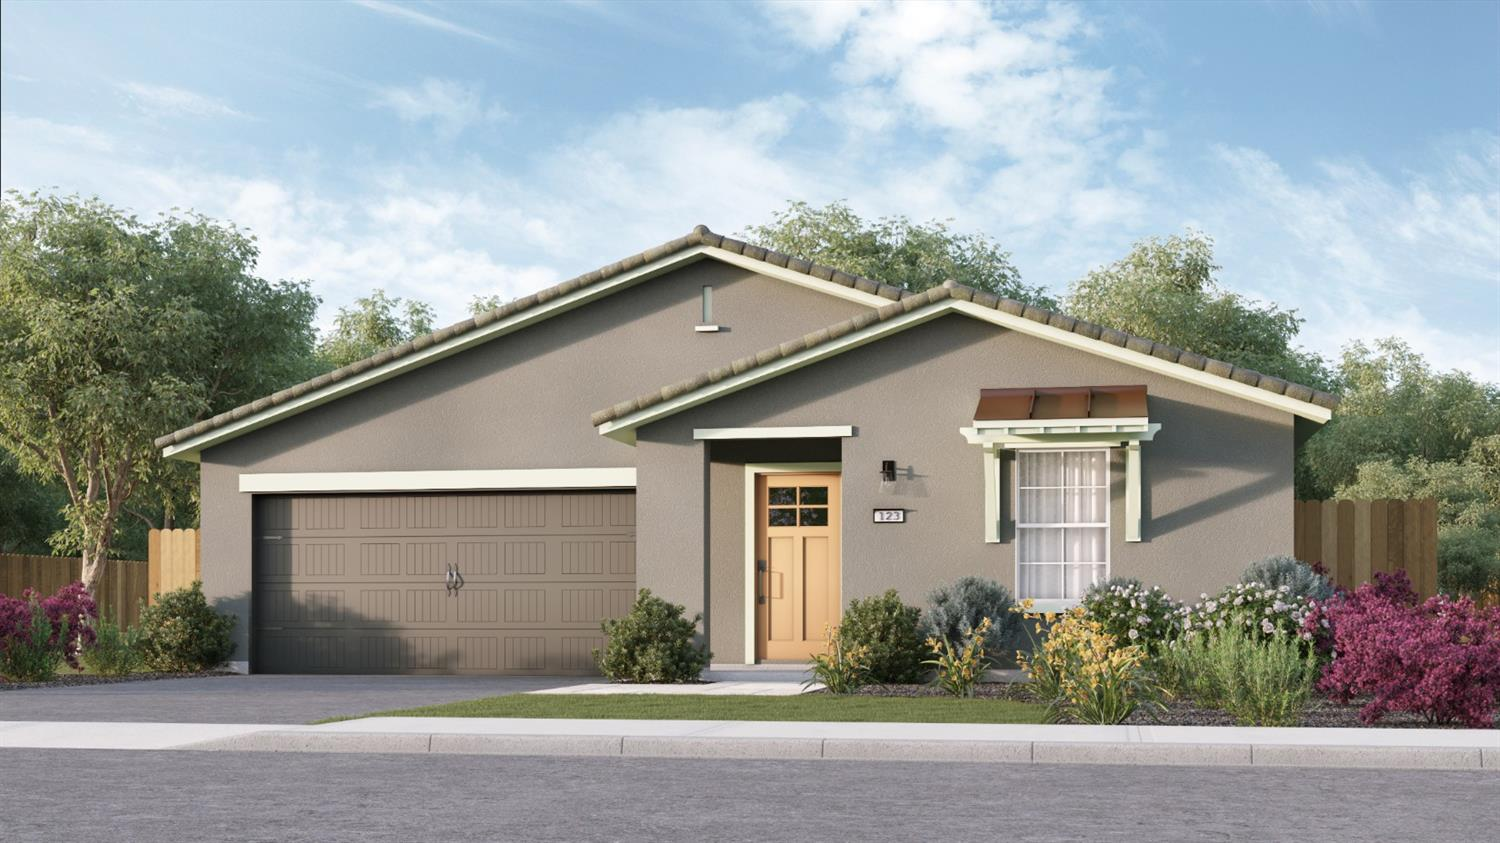 Enjoy a charming single-story home with four bedrooms and three baths. The focal point of this home